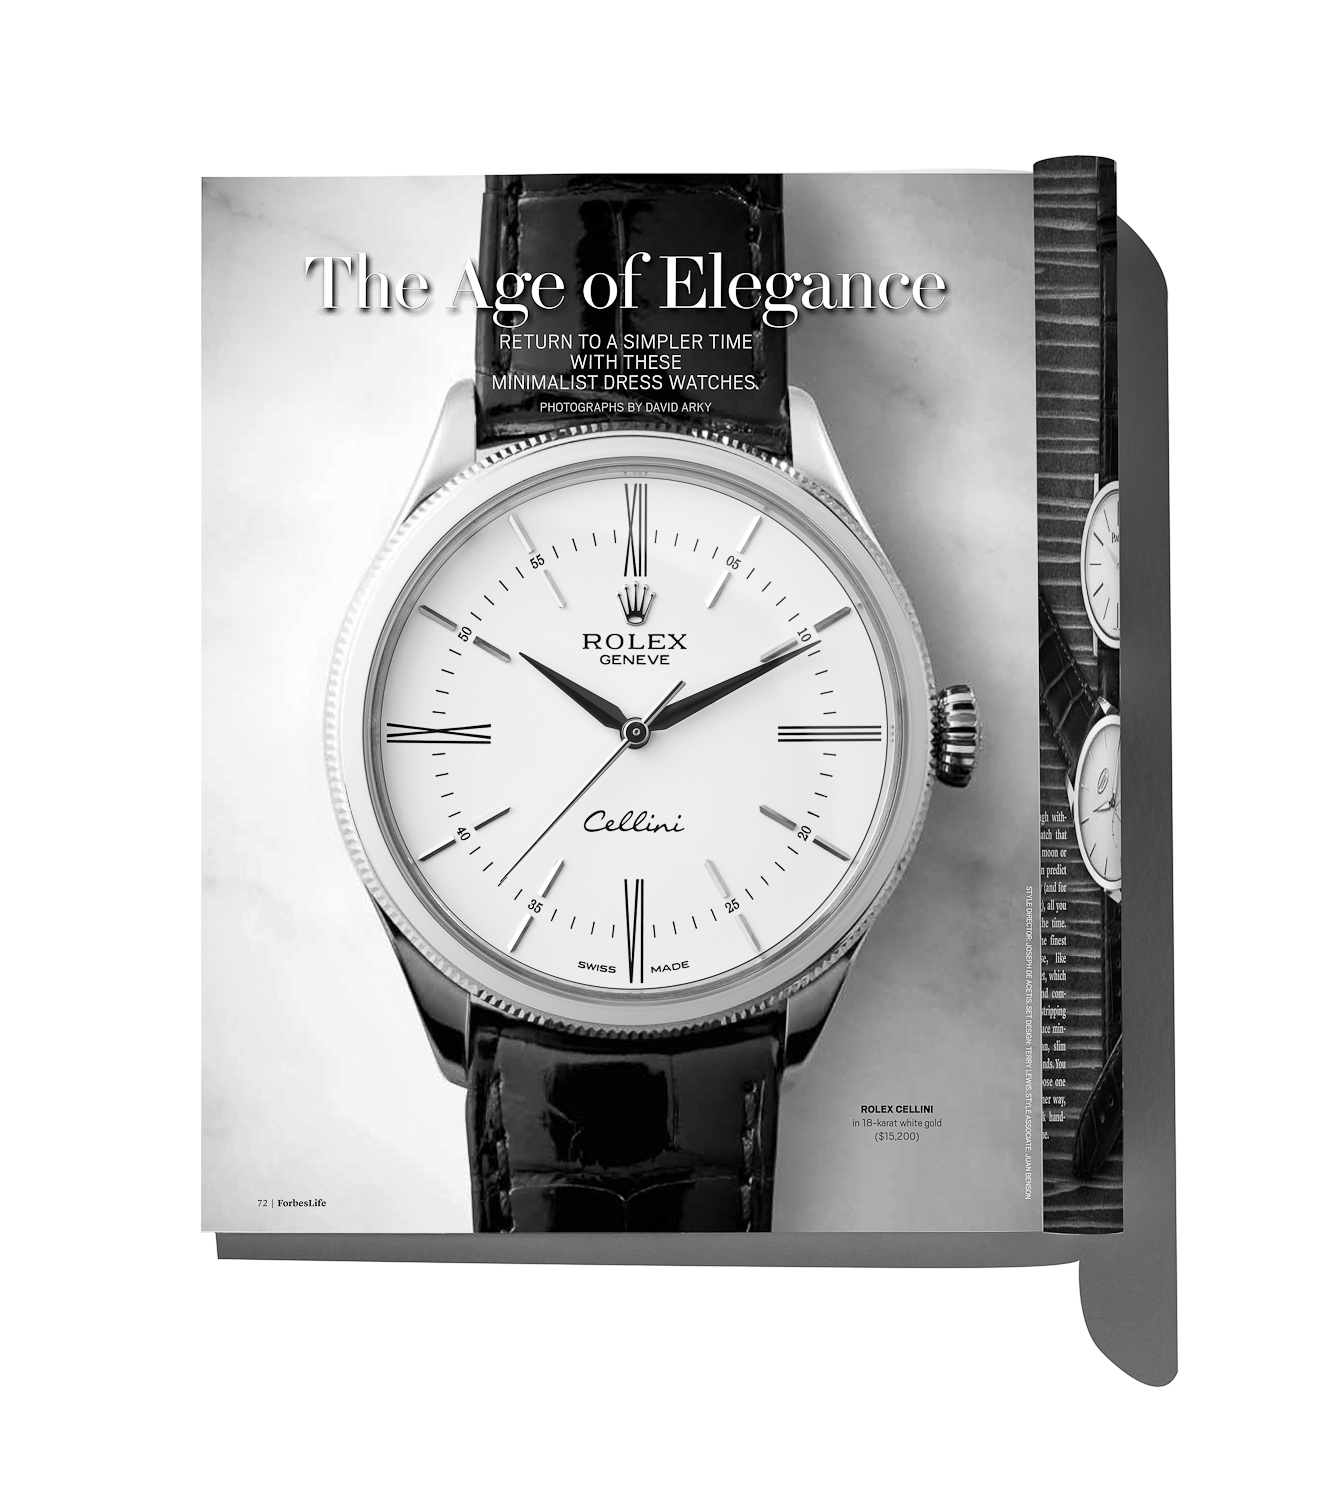 David_Arky_Forbes Life Watches.jpg